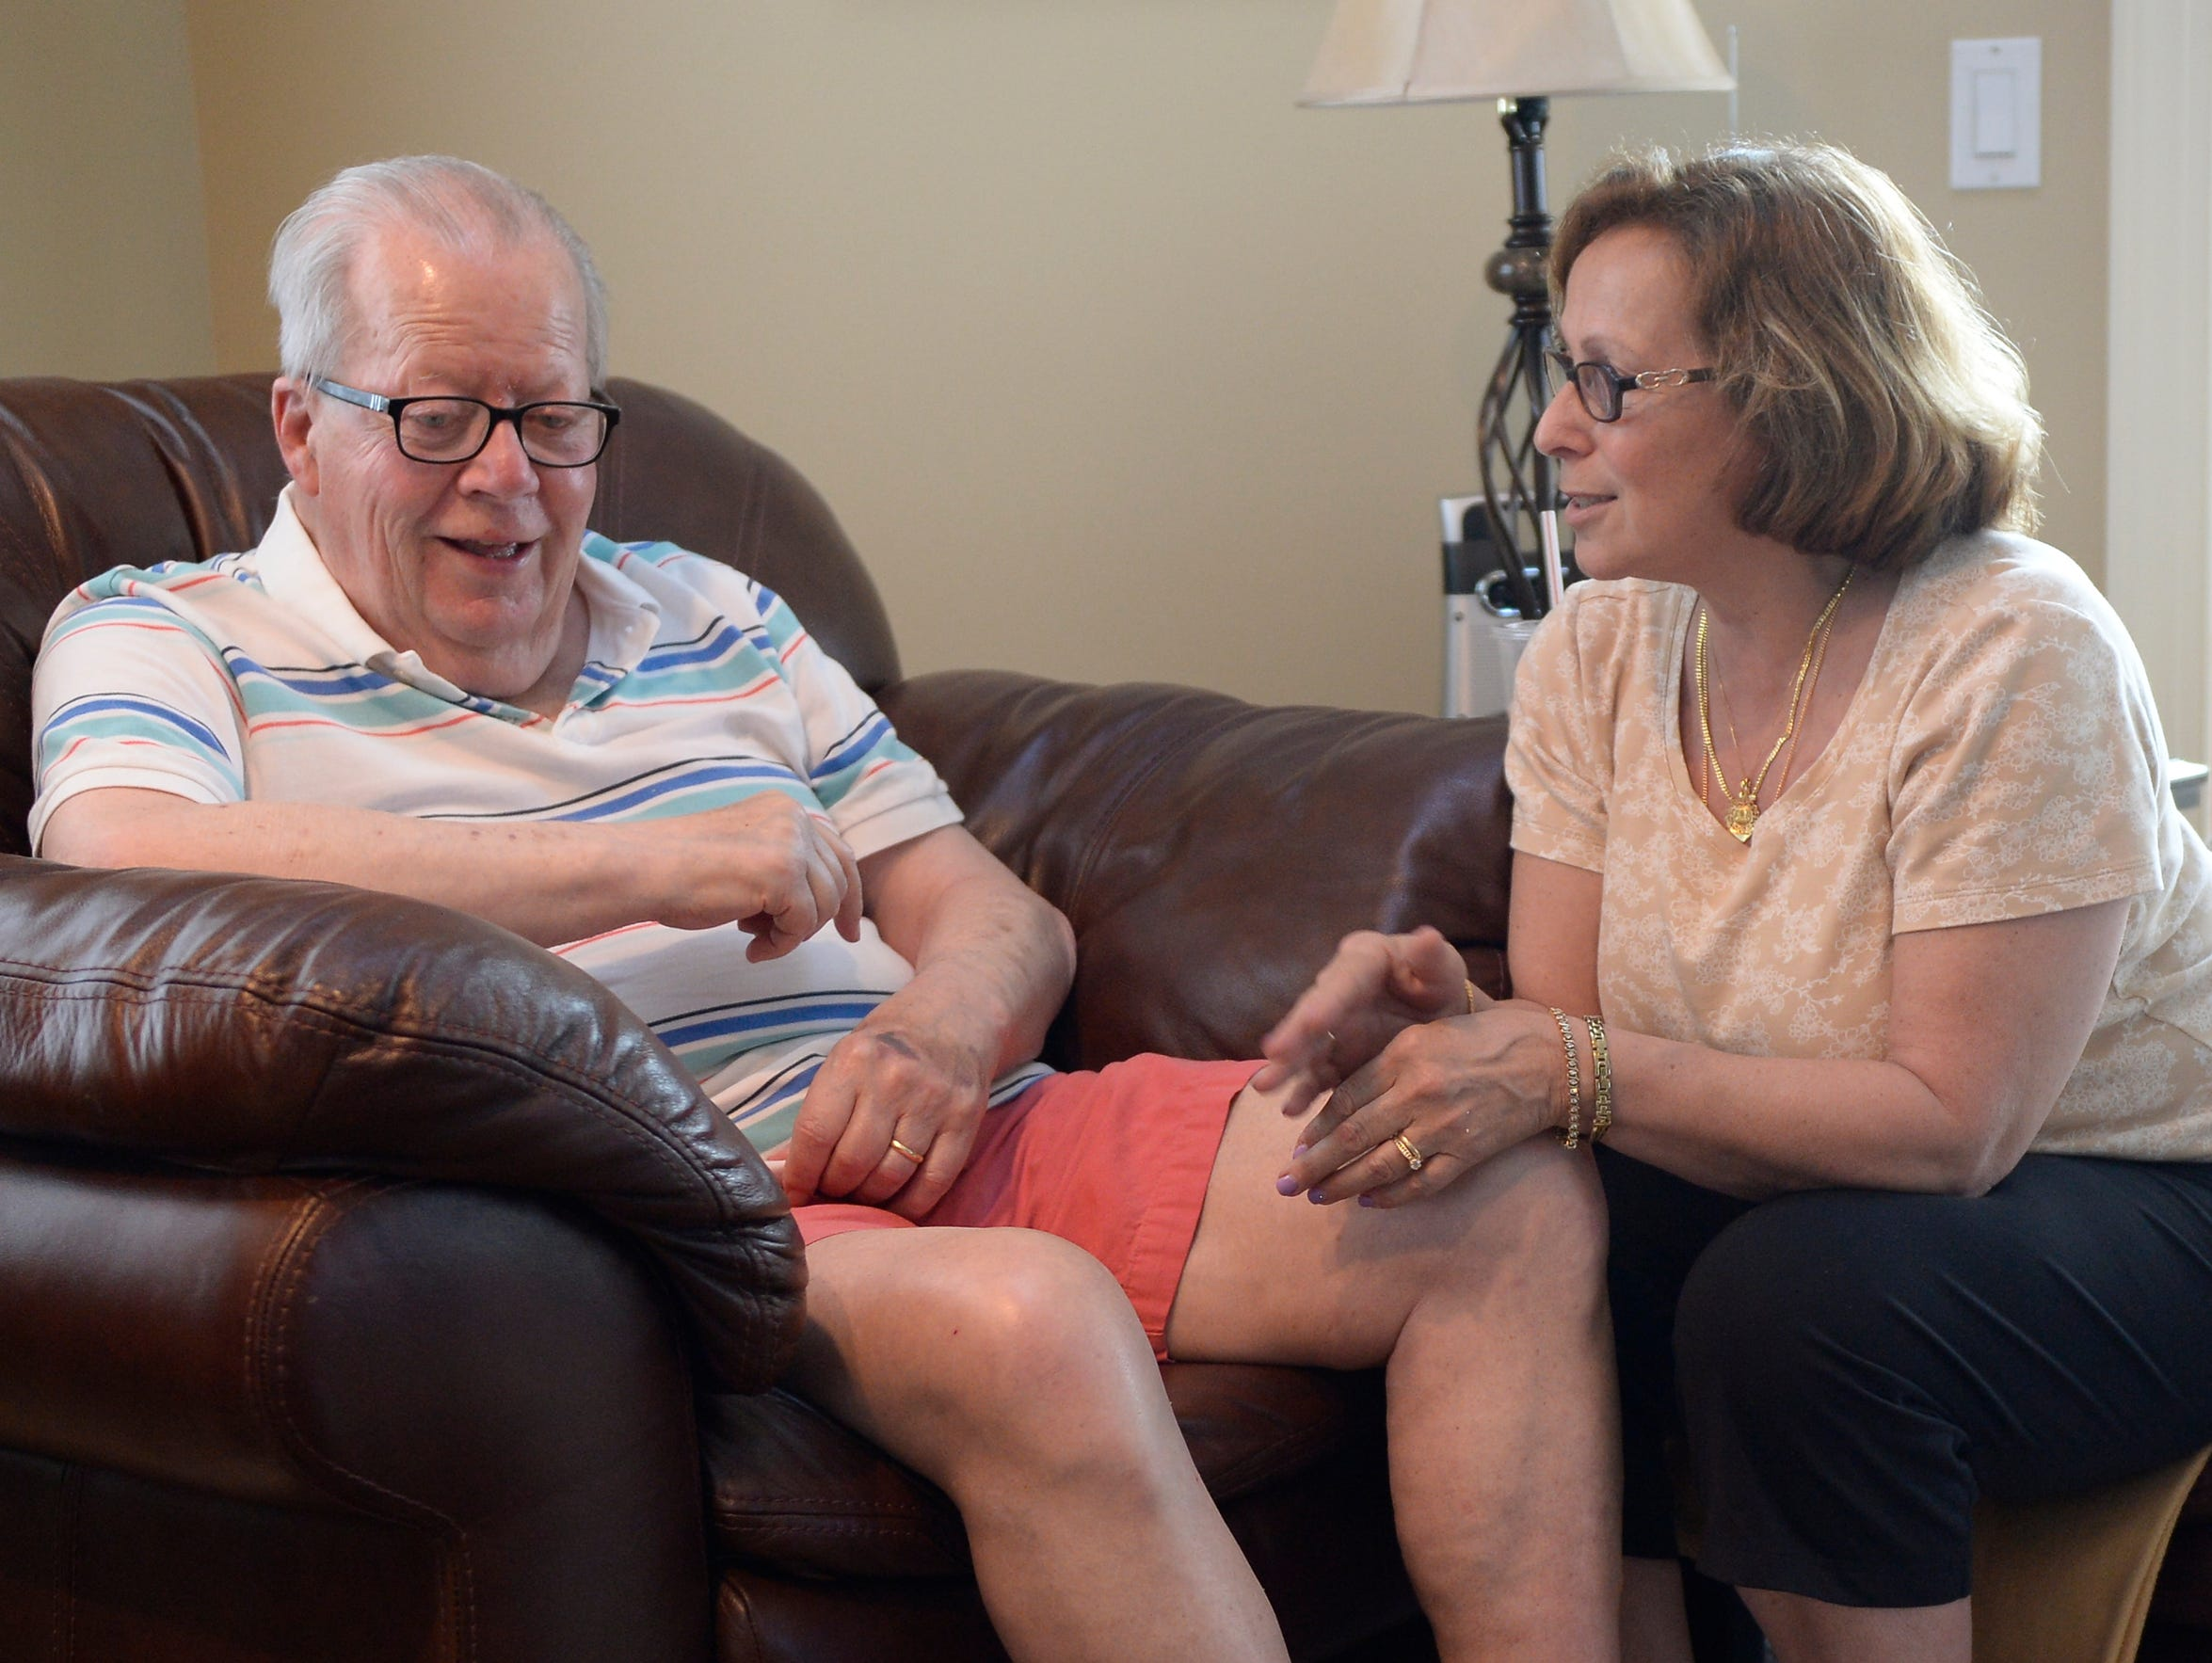 Debby White retired early to take care of her husband